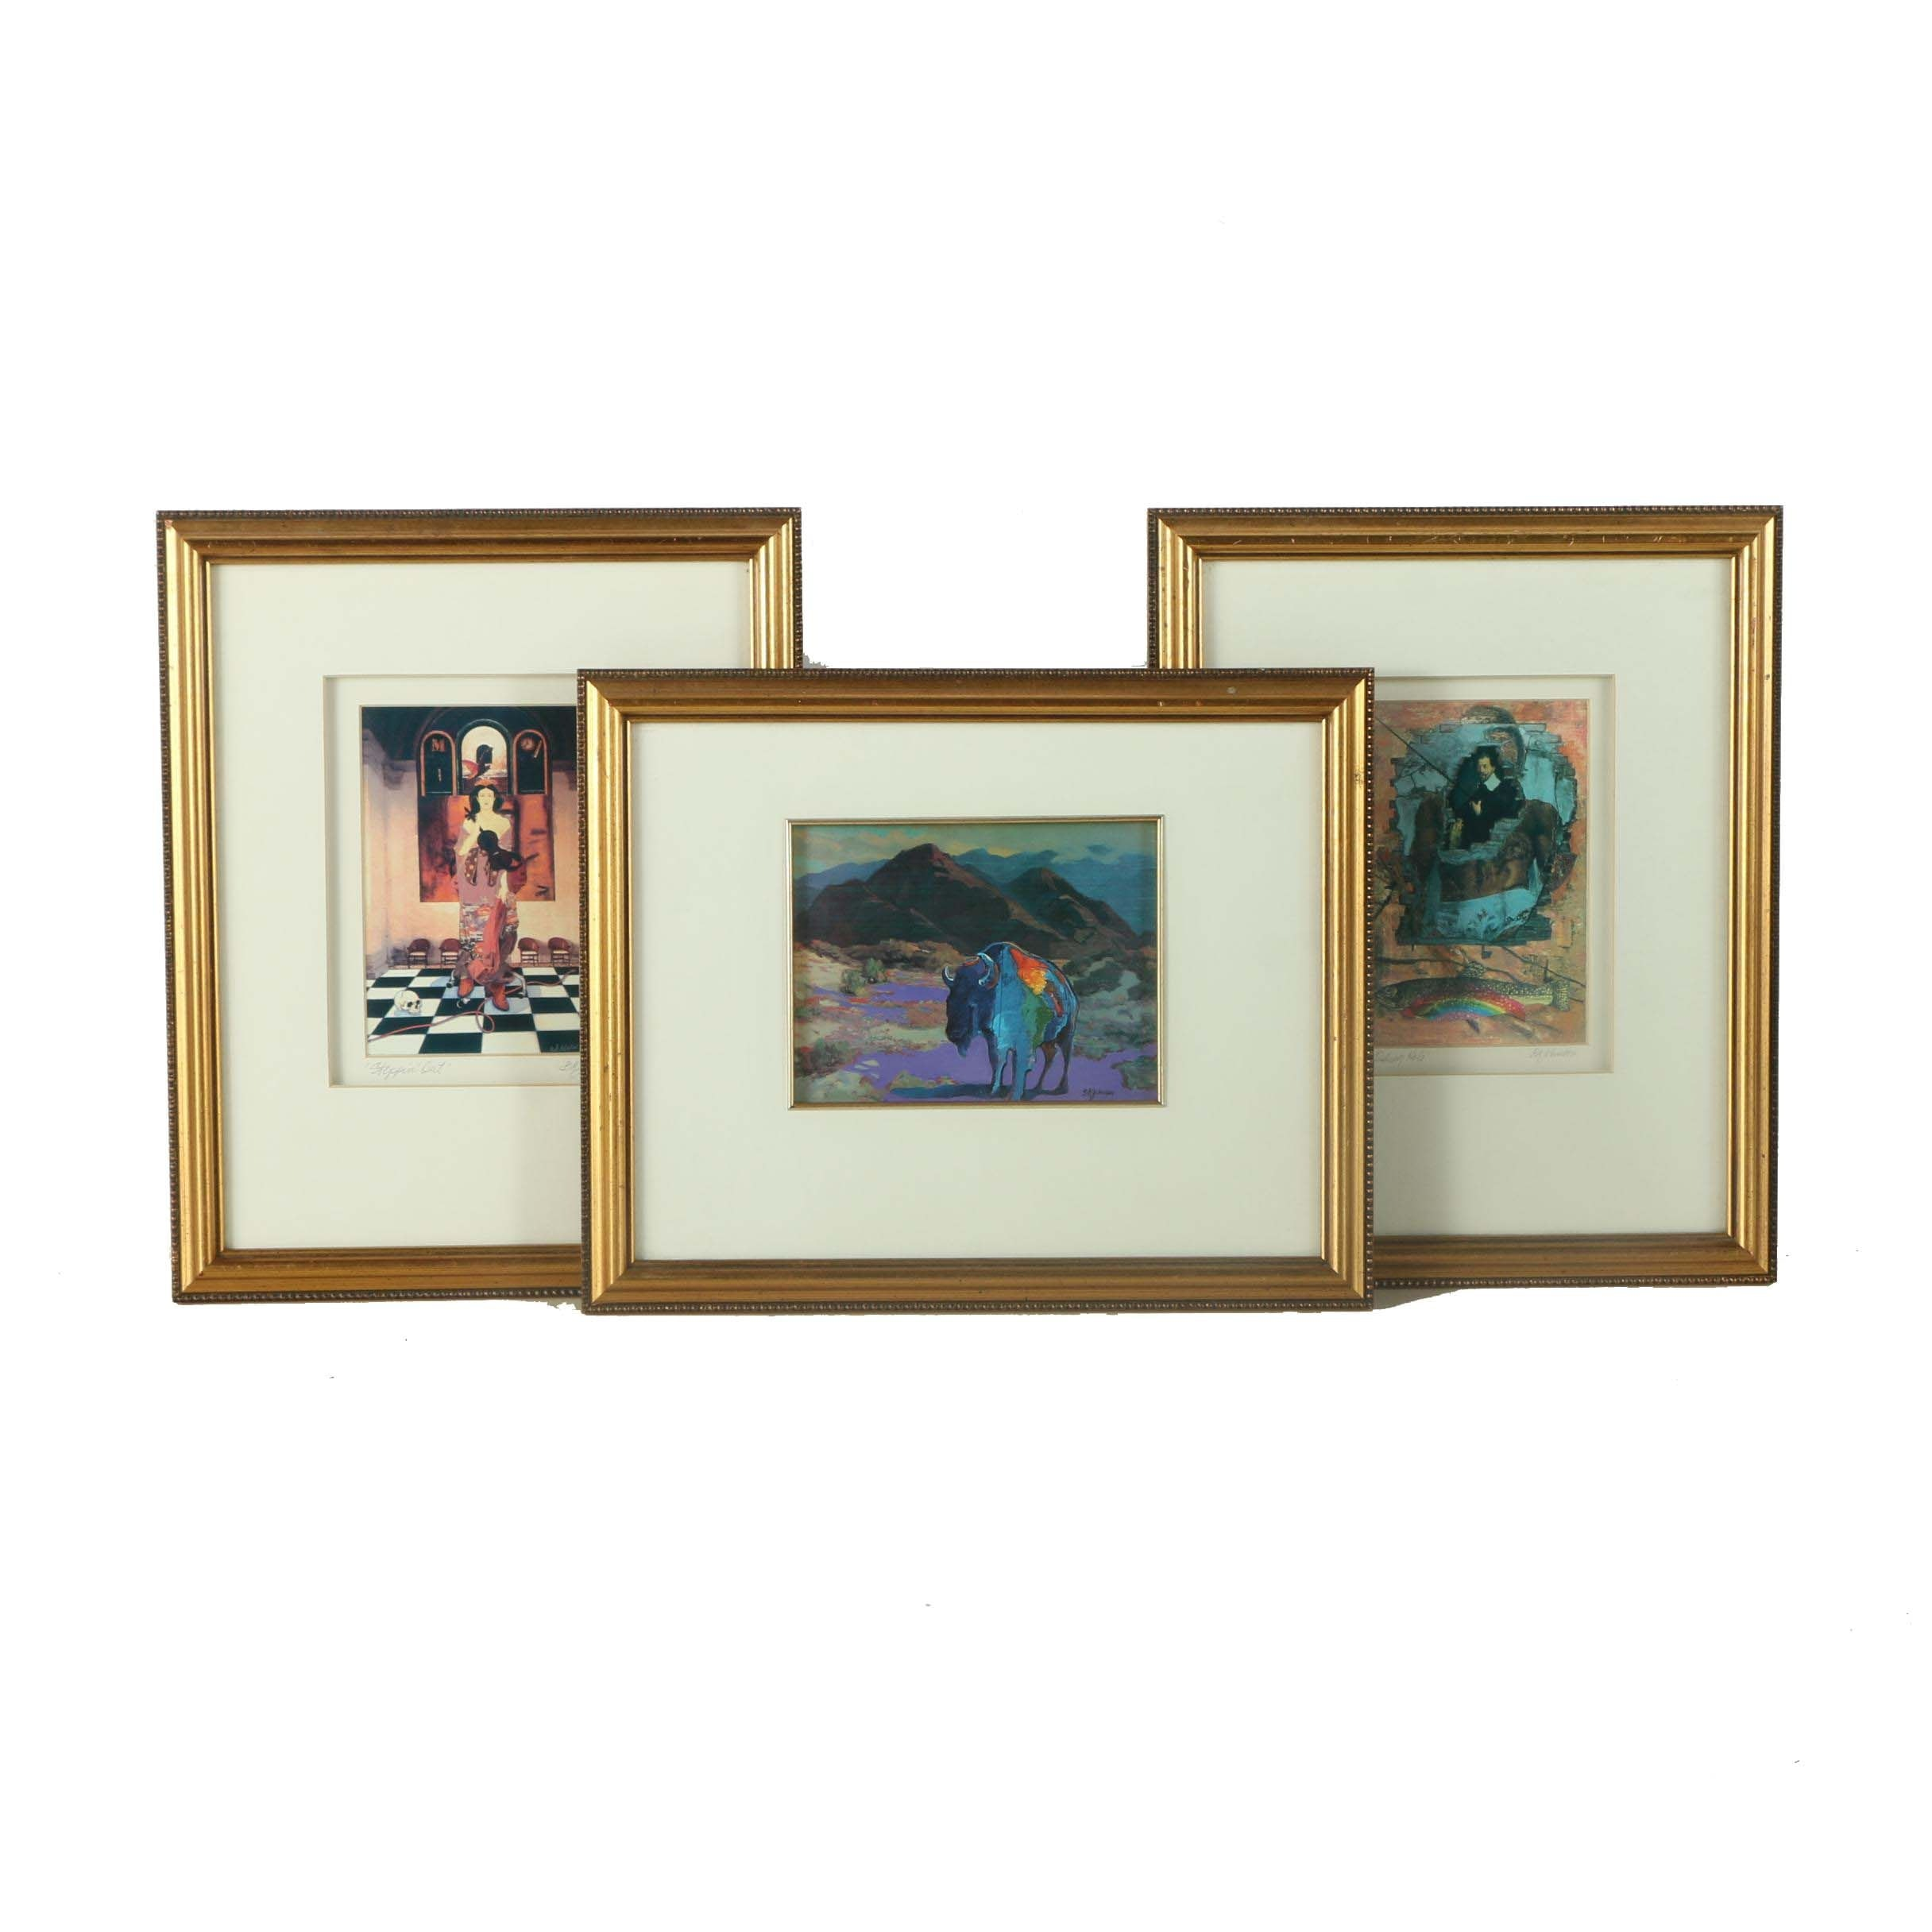 Giclee Prints and Offset Lithograph on Paper After B. A. Johnson